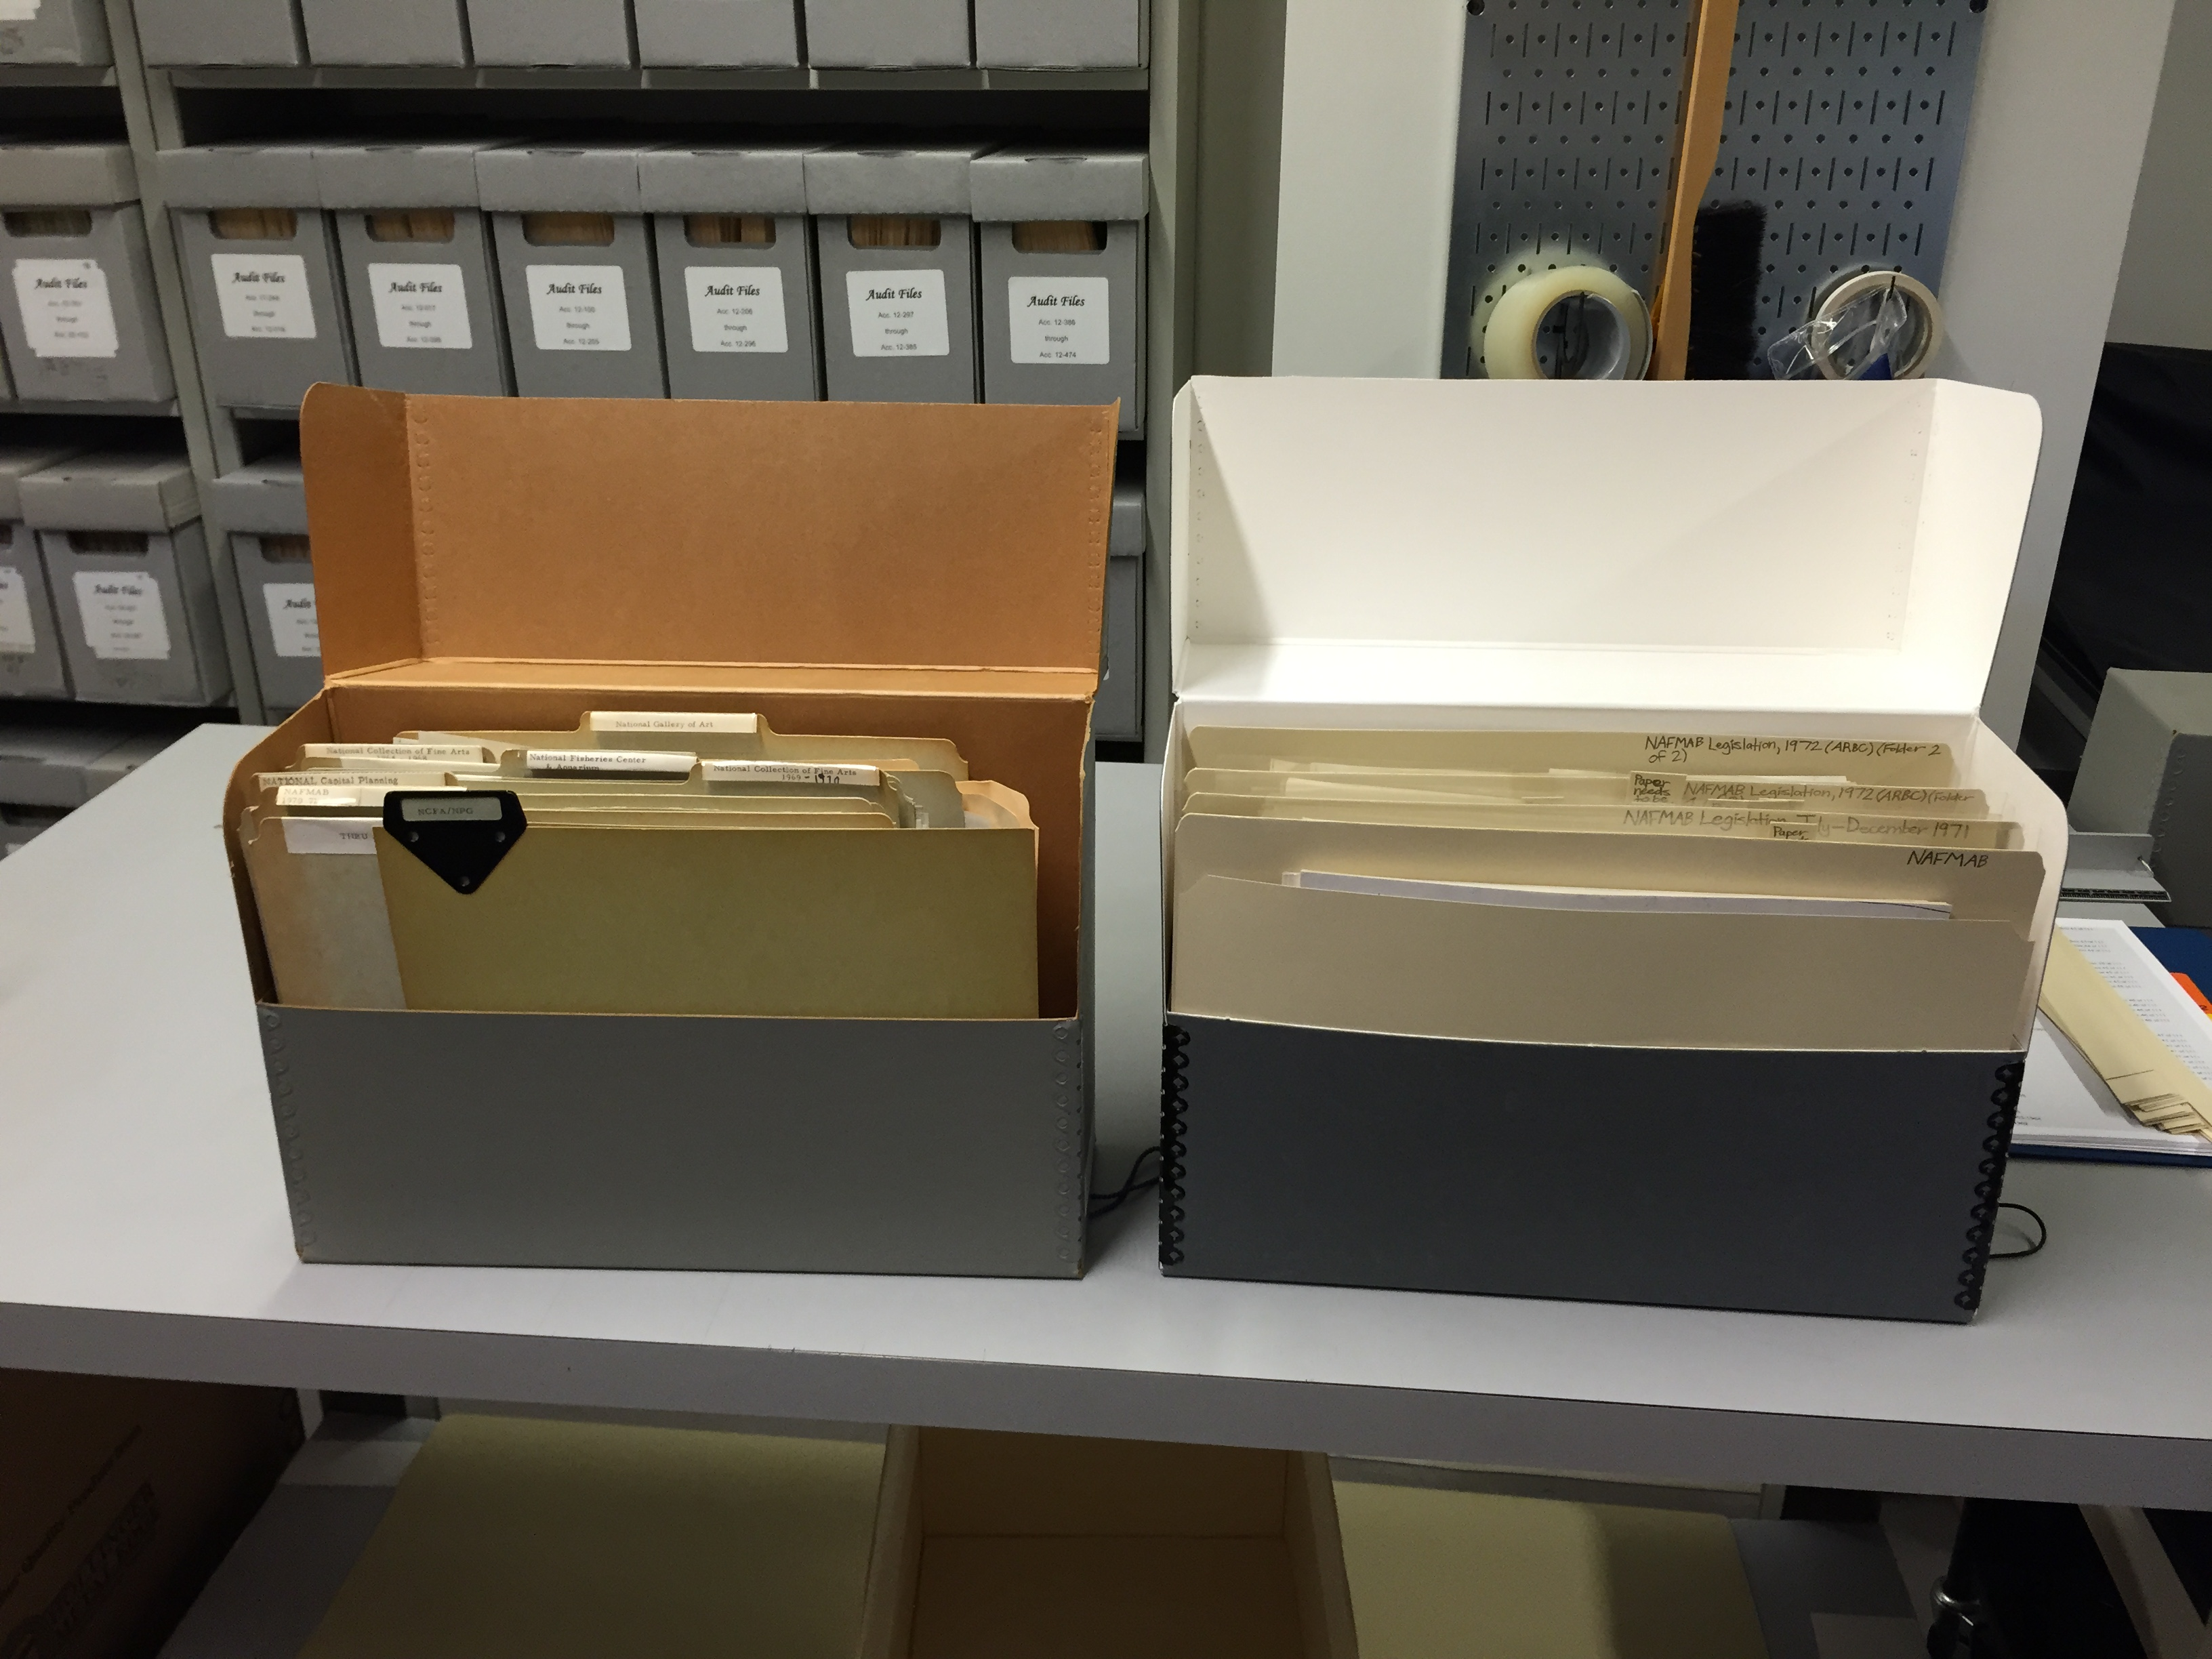 Side-by-side comparison of an old box at left, with visible deterioration and wrong-size folders, and a new box, with pristine housing materials fitted to the box dimensions.